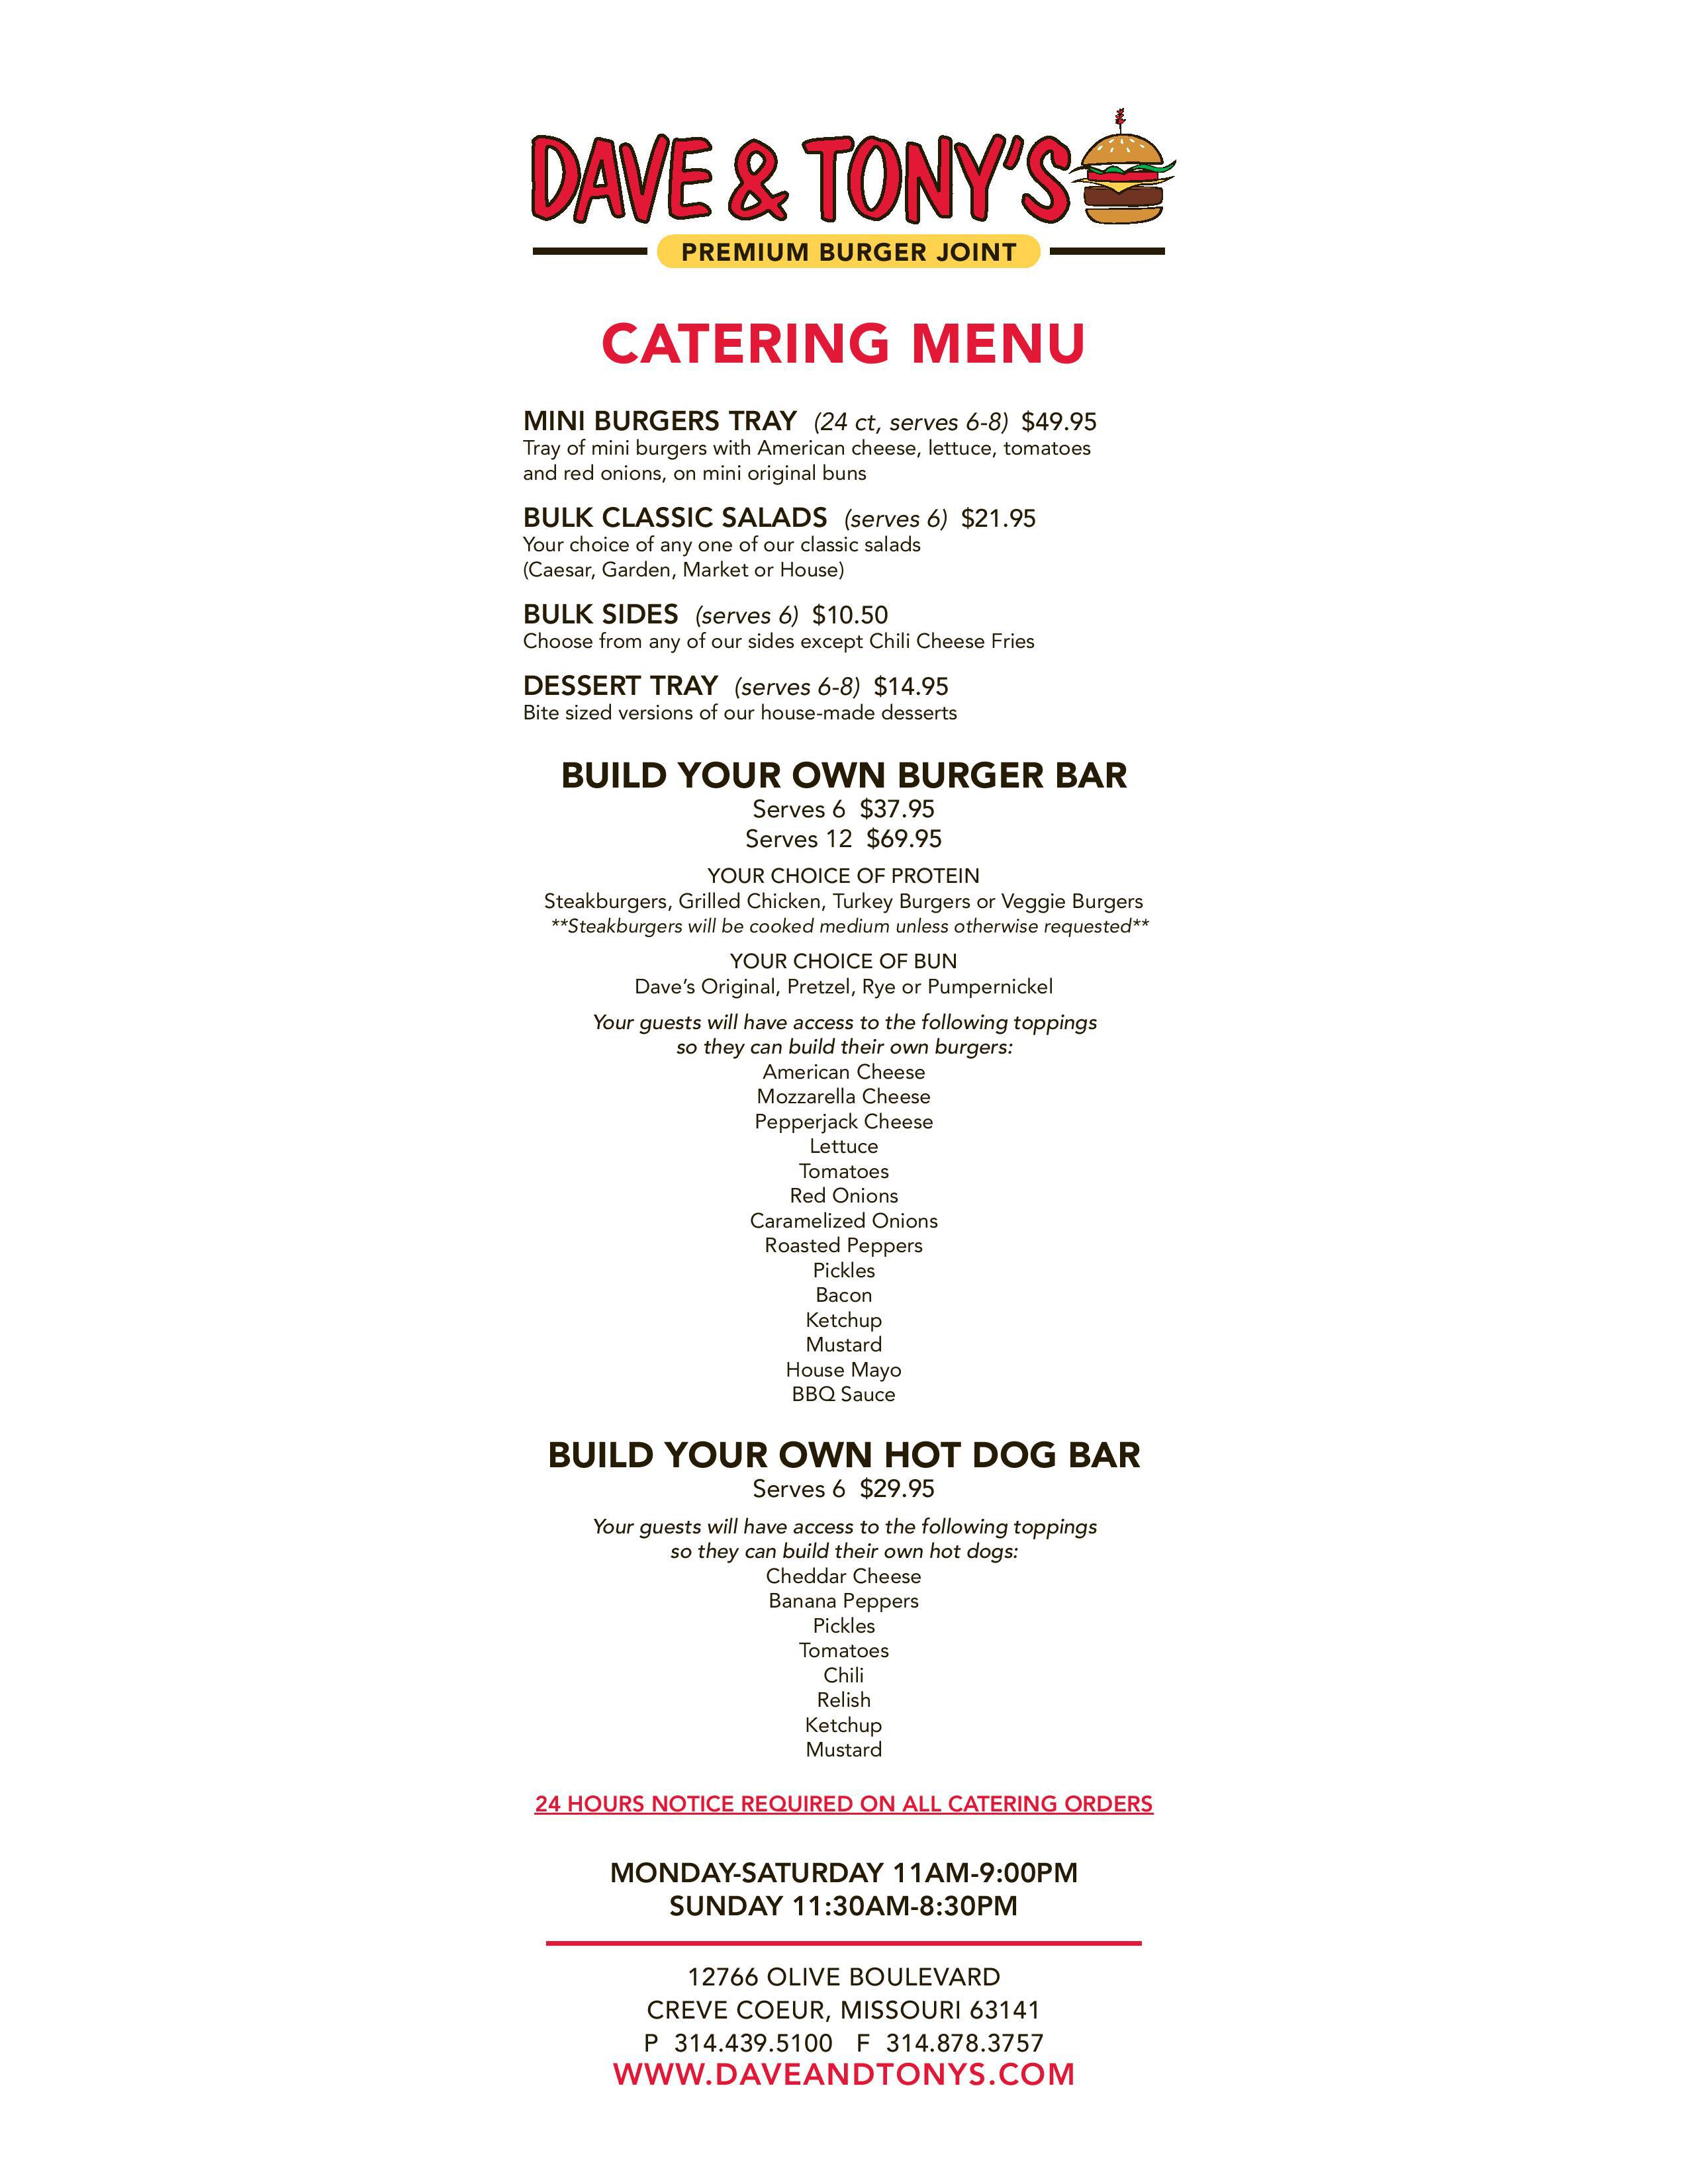 Dave and Tony's Catering Menu